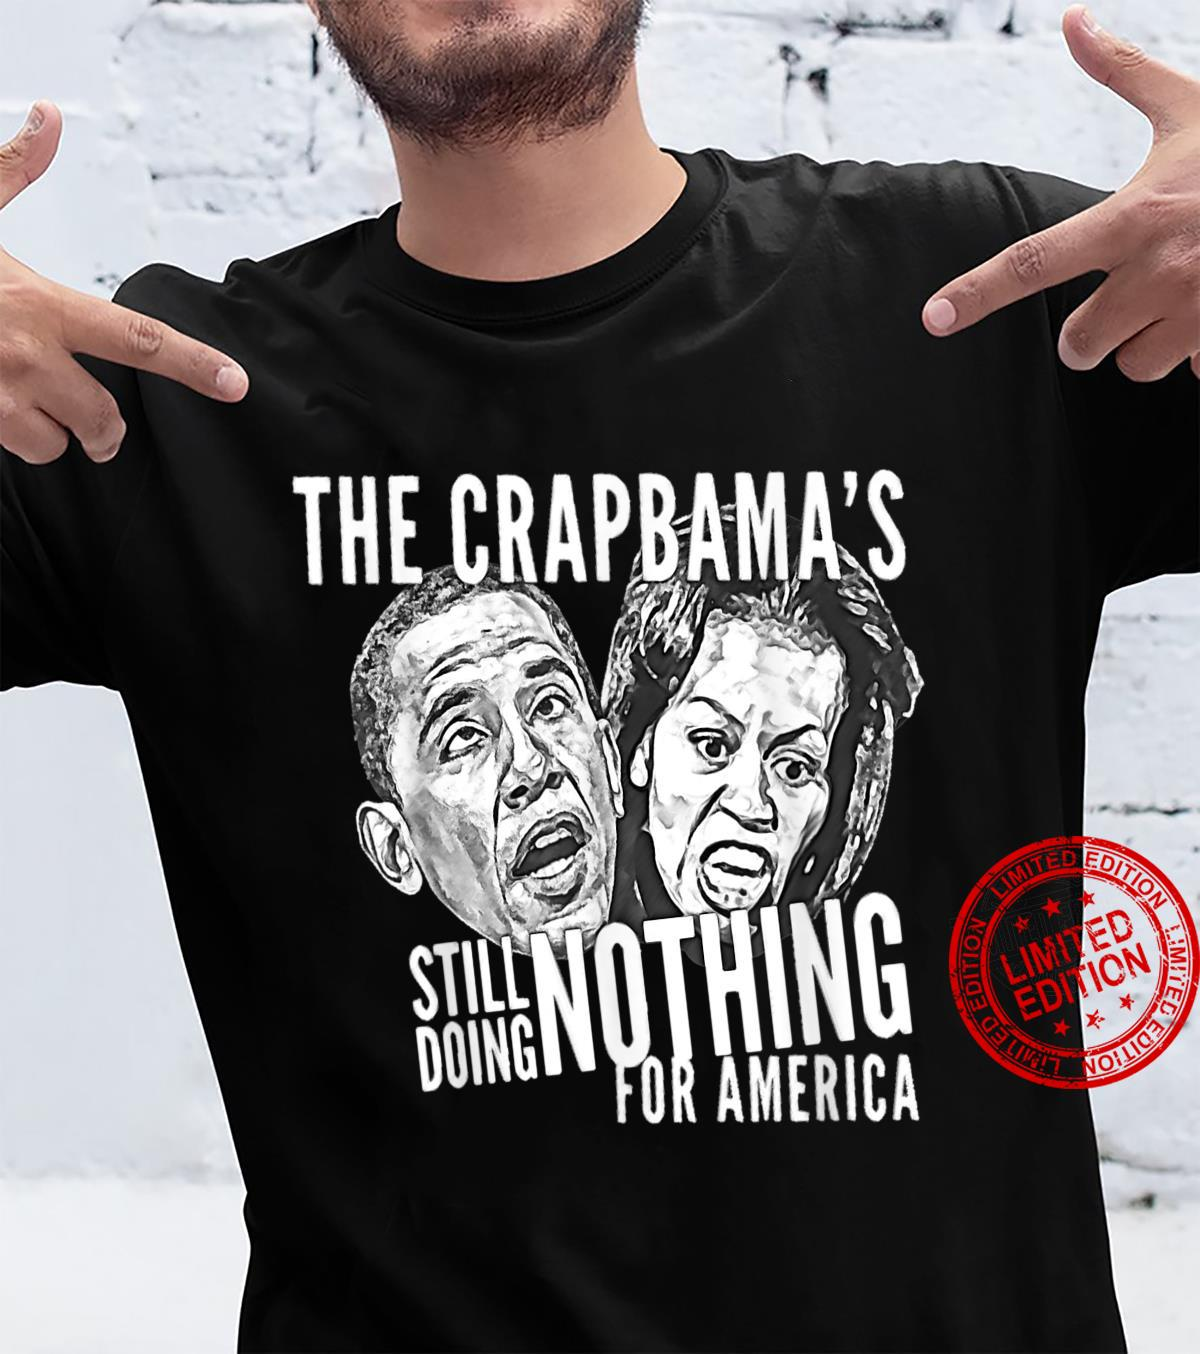 The Crapbama's Still Doing Nothing For American Shirt